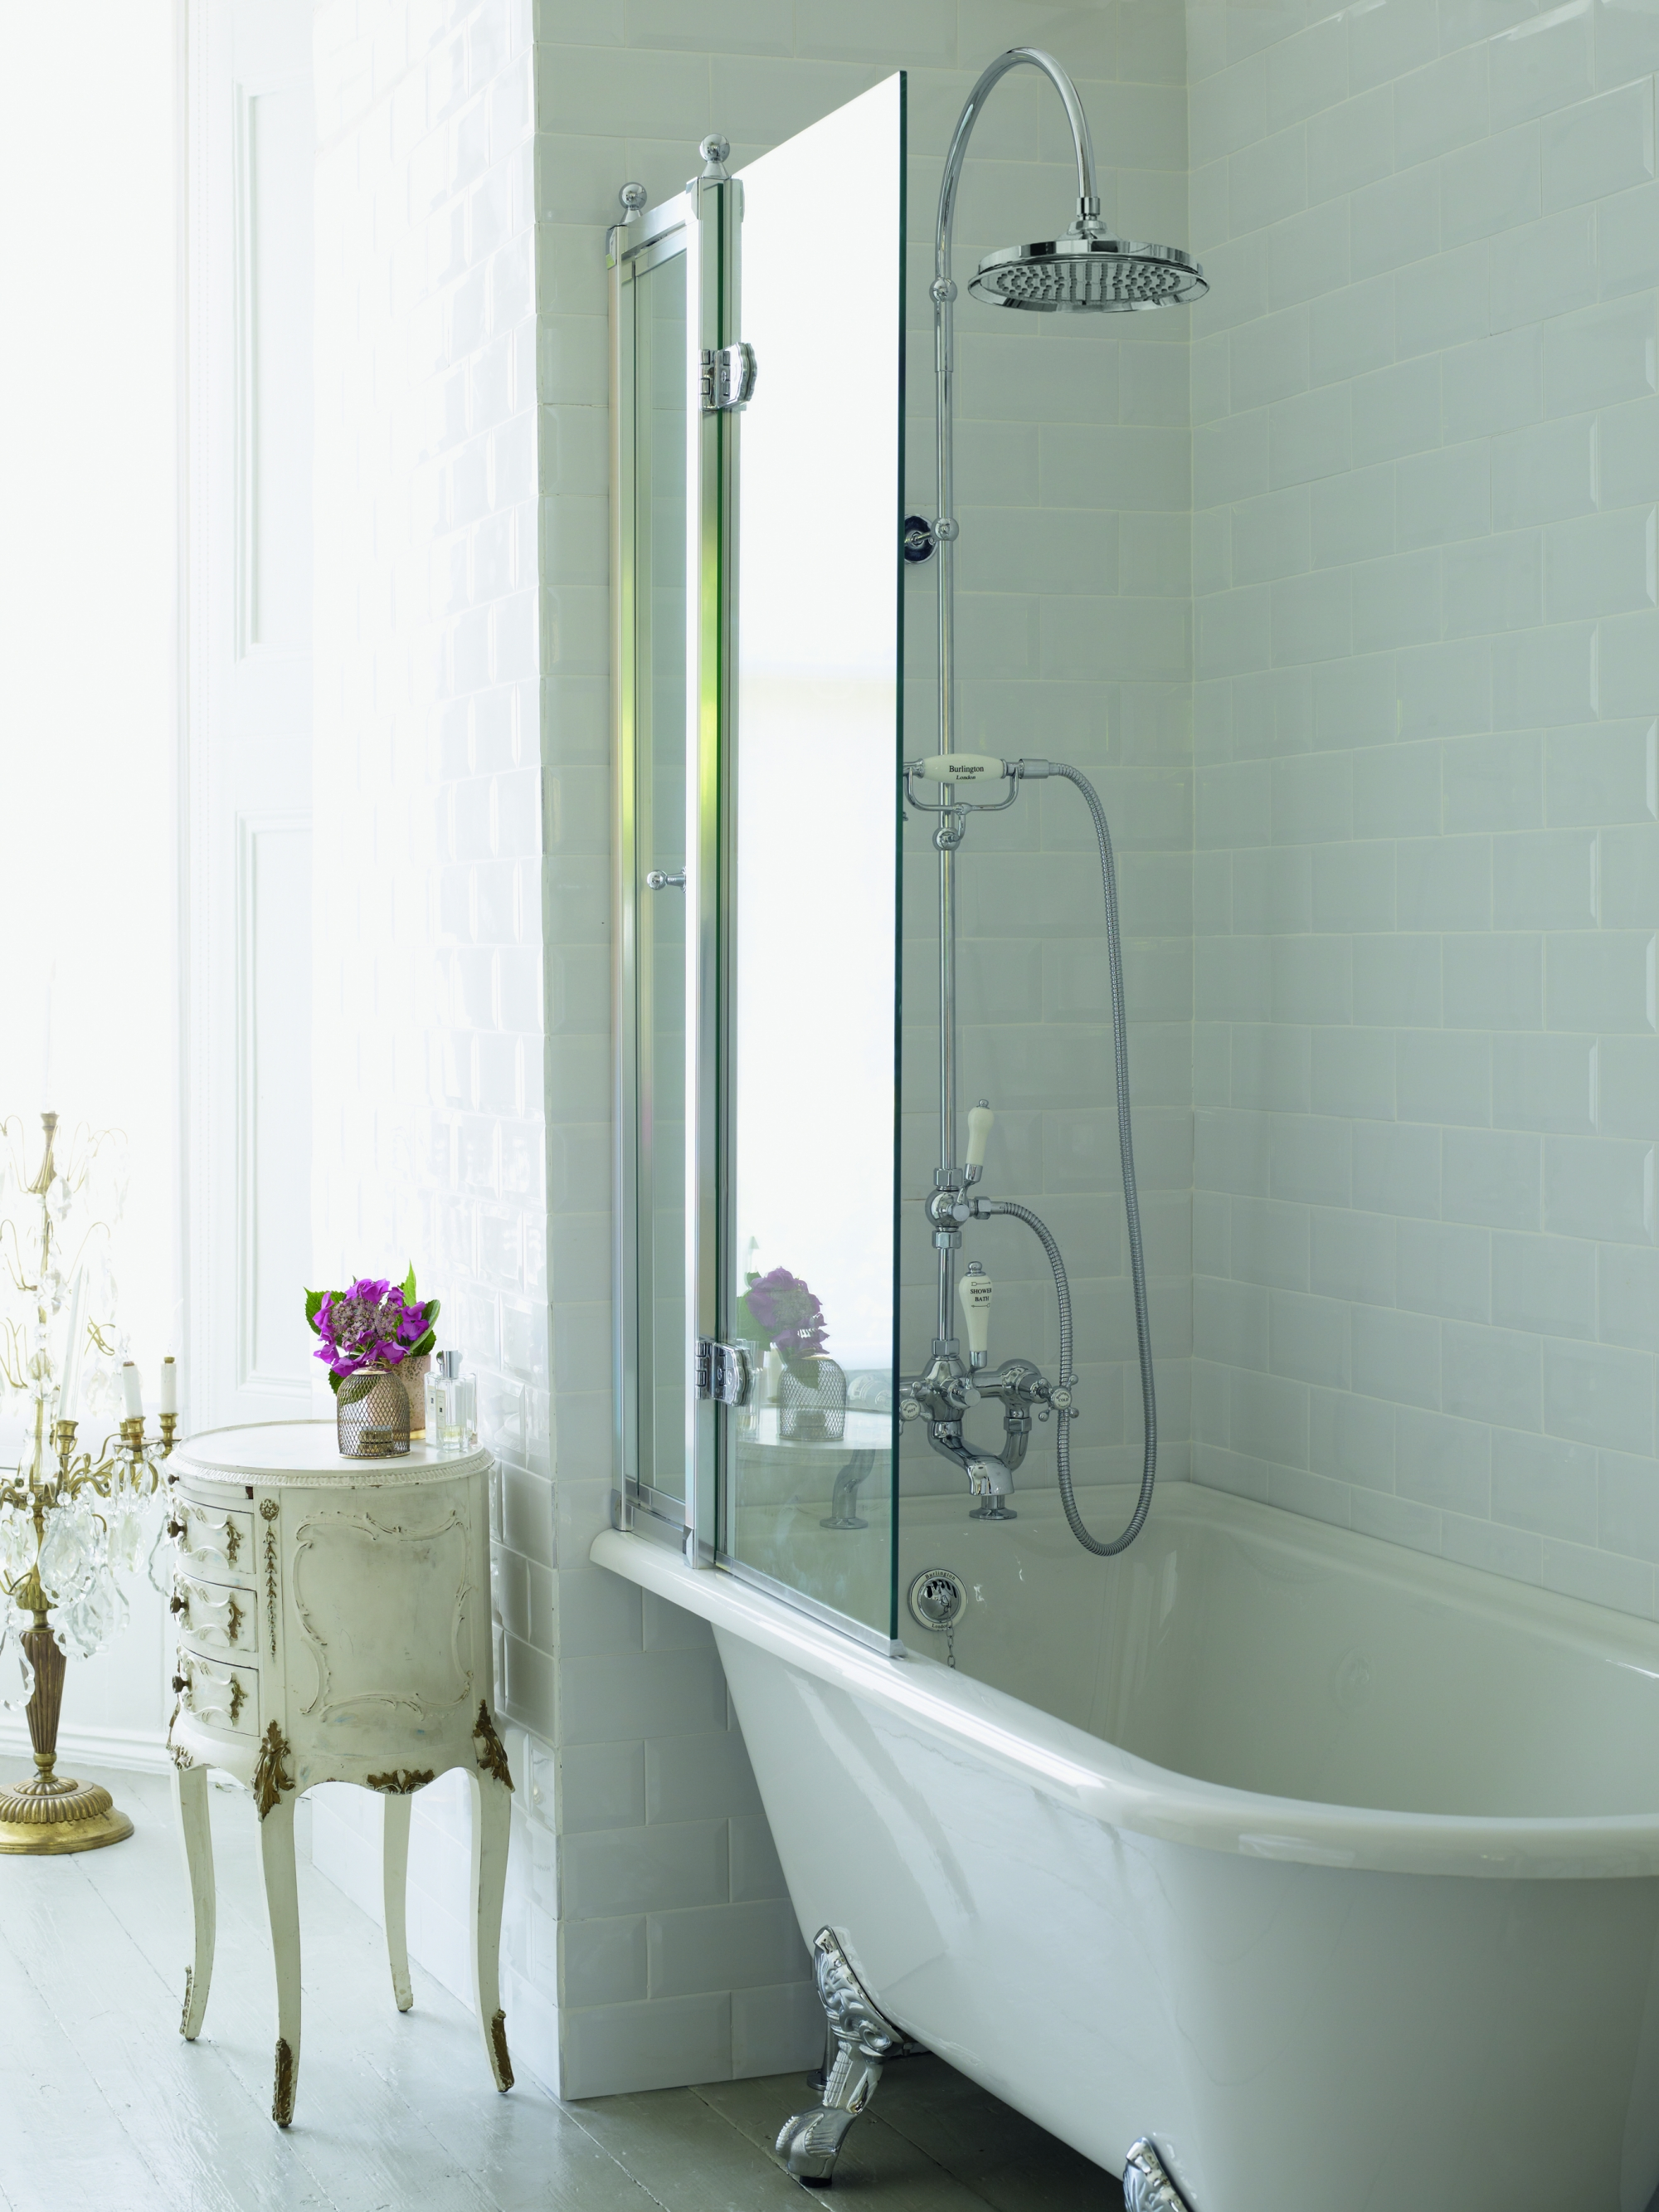 Amazing Bathroom Faucets Lowes Thick Heated Whirlpool Baths Round Bath And Shower Enclosures Granite Bathroom Vanity Top Cost Youthful Glass Vessel Bathroom Sinks PurpleGrout Bathroom Shower Tile Help \u0026amp; Advice | The Right Bathroom Design For You \u0026amp; Your Home ..